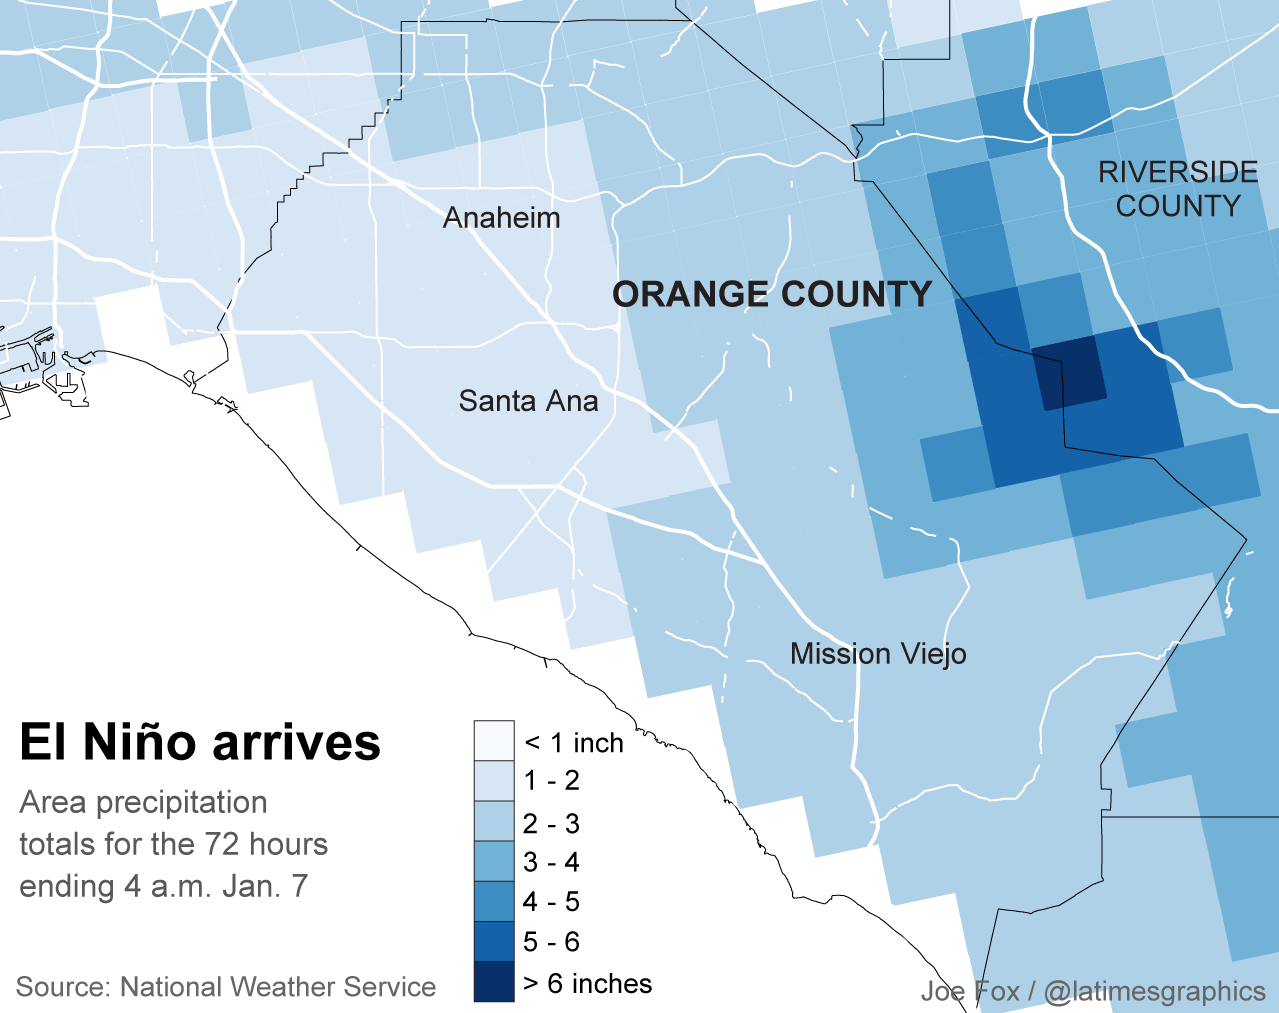 El Niño This Week More Rain Expected In Soaked Southern - Los angeles ventura map